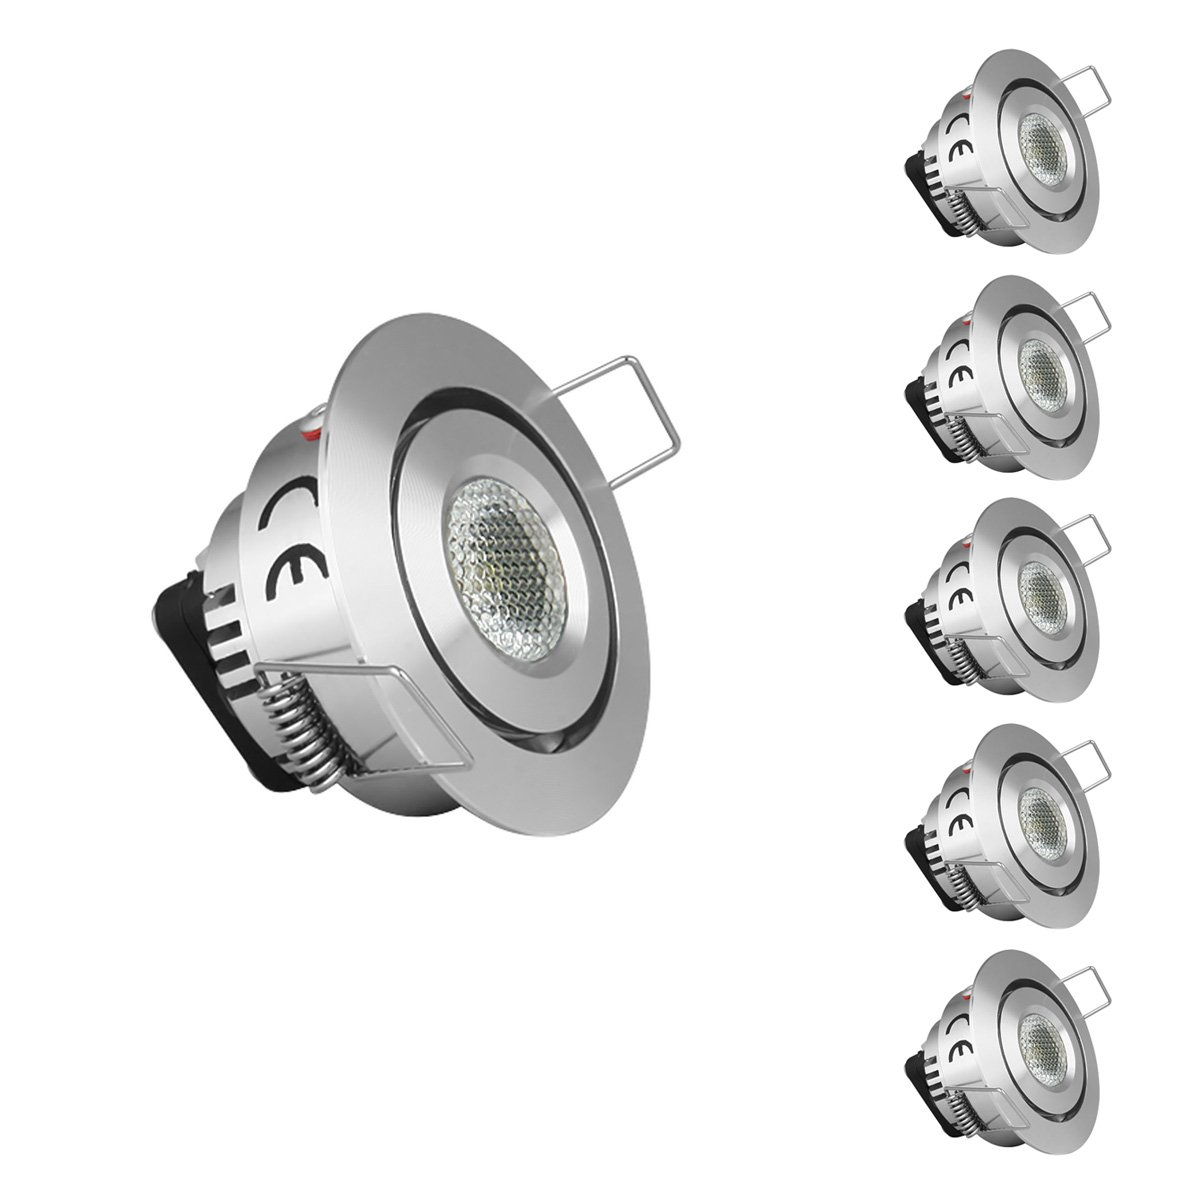 LE Pack of 5 units 1.5-Inch LED Under Cabinet Lighting, 10W ...